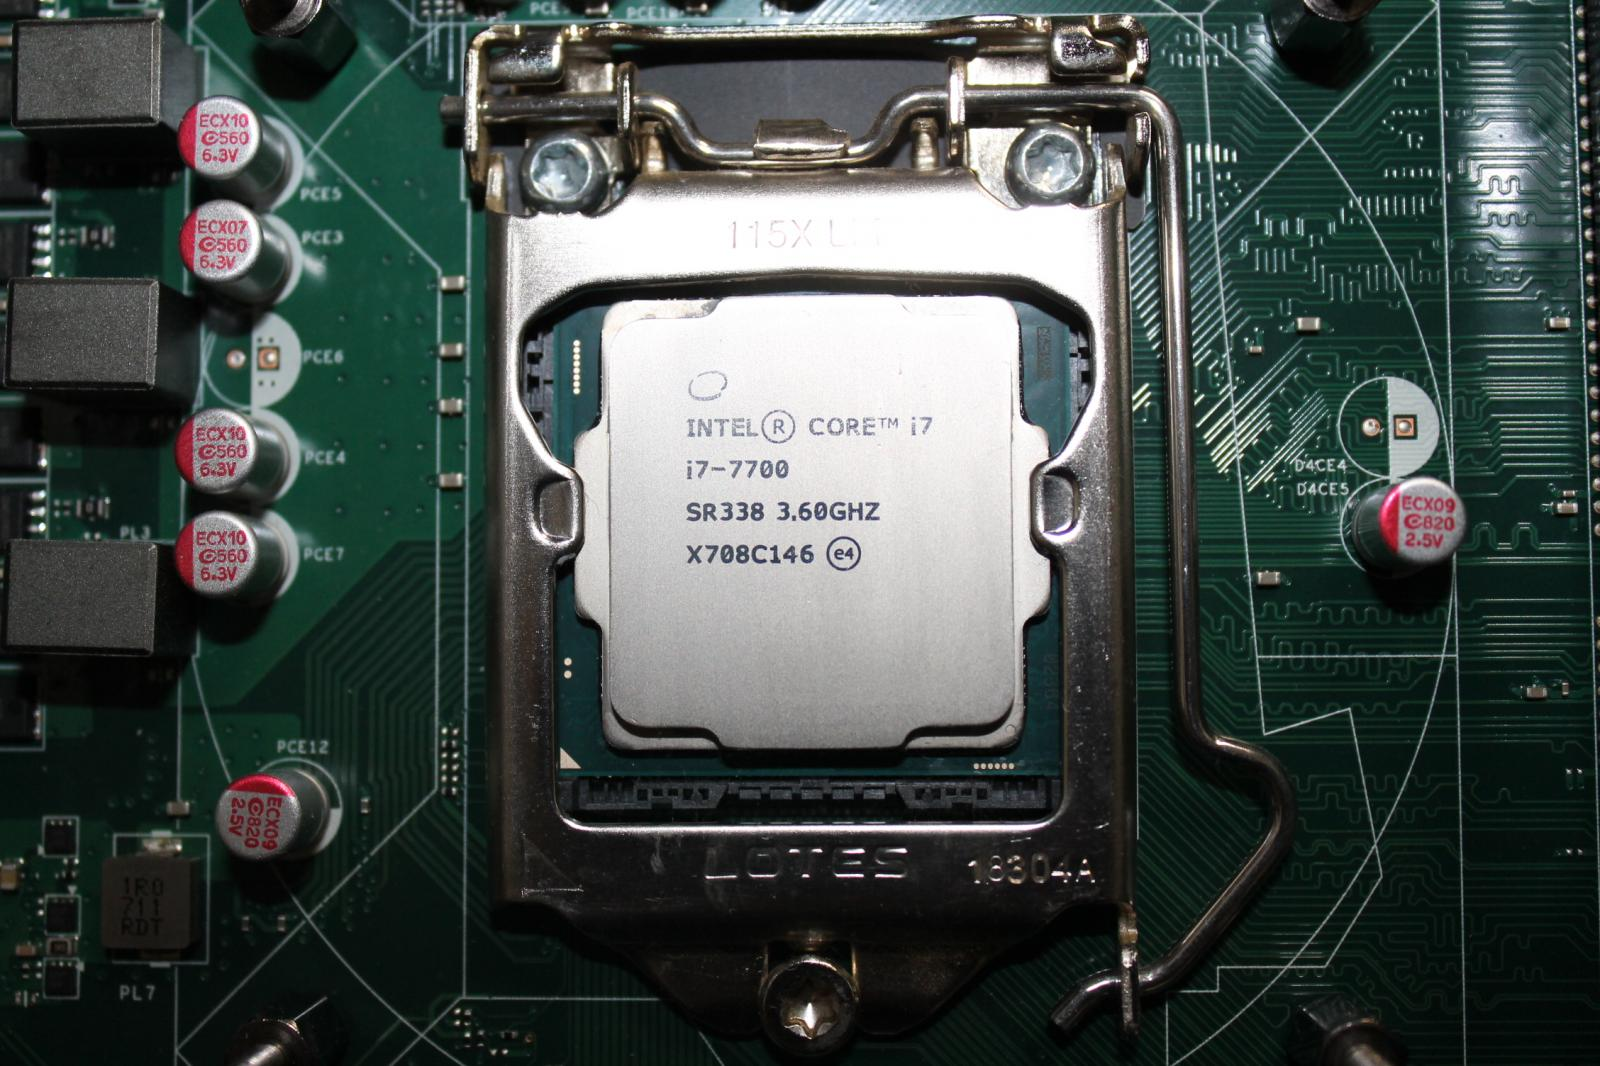 Photo of Intel i7-7700 with 8GB DDR4 2666Mhz ram stick and HP Omen motherboard.